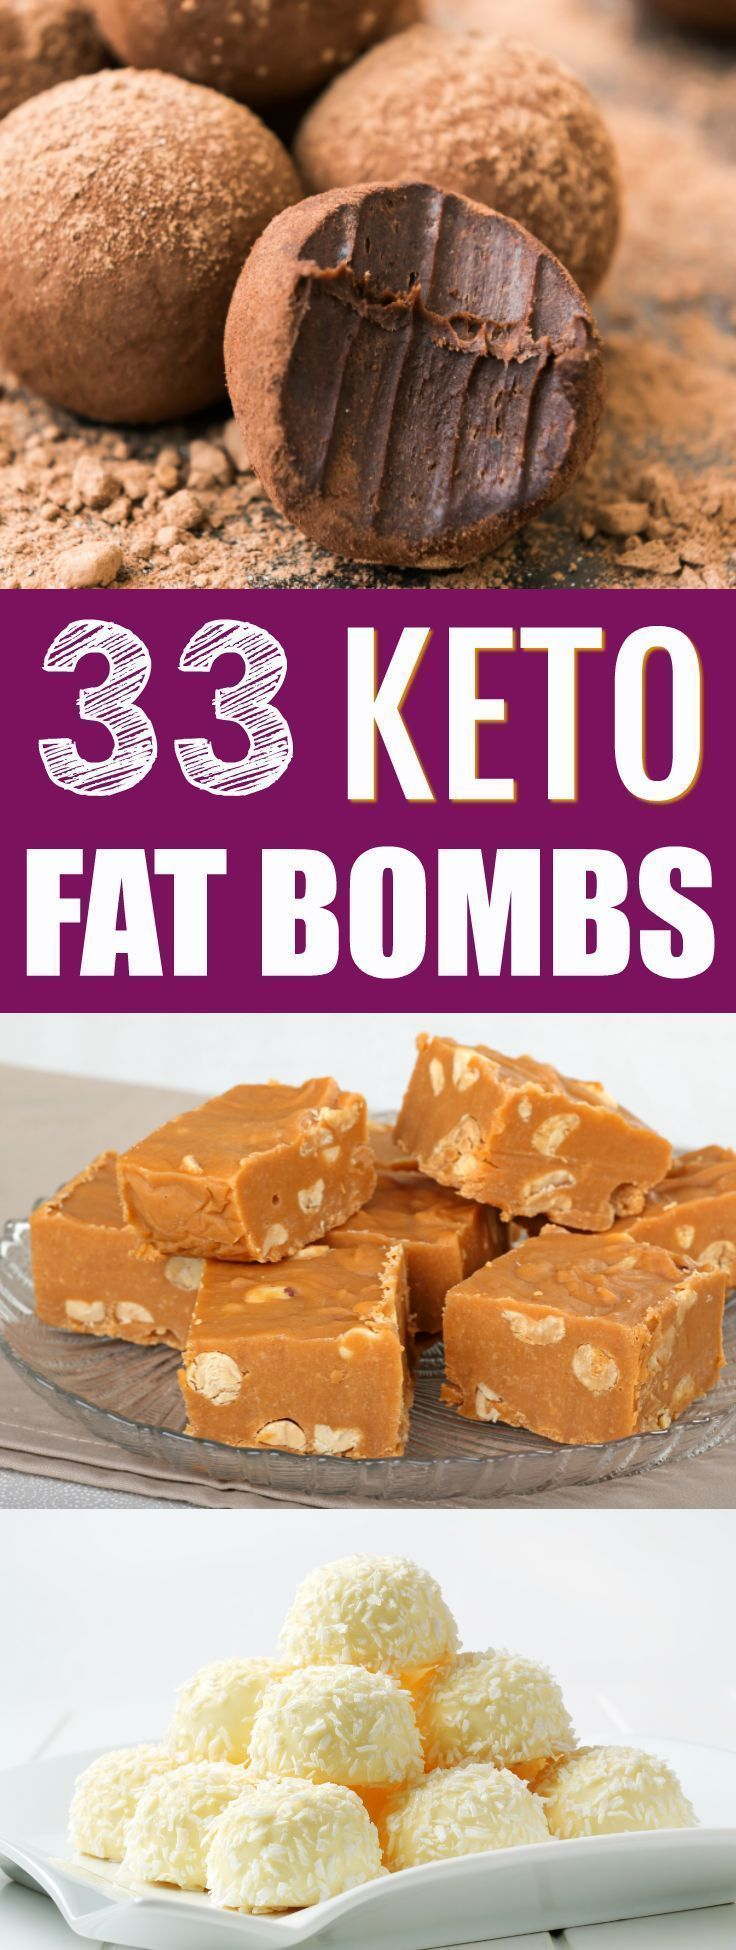 can we eat jaggery in keto diet